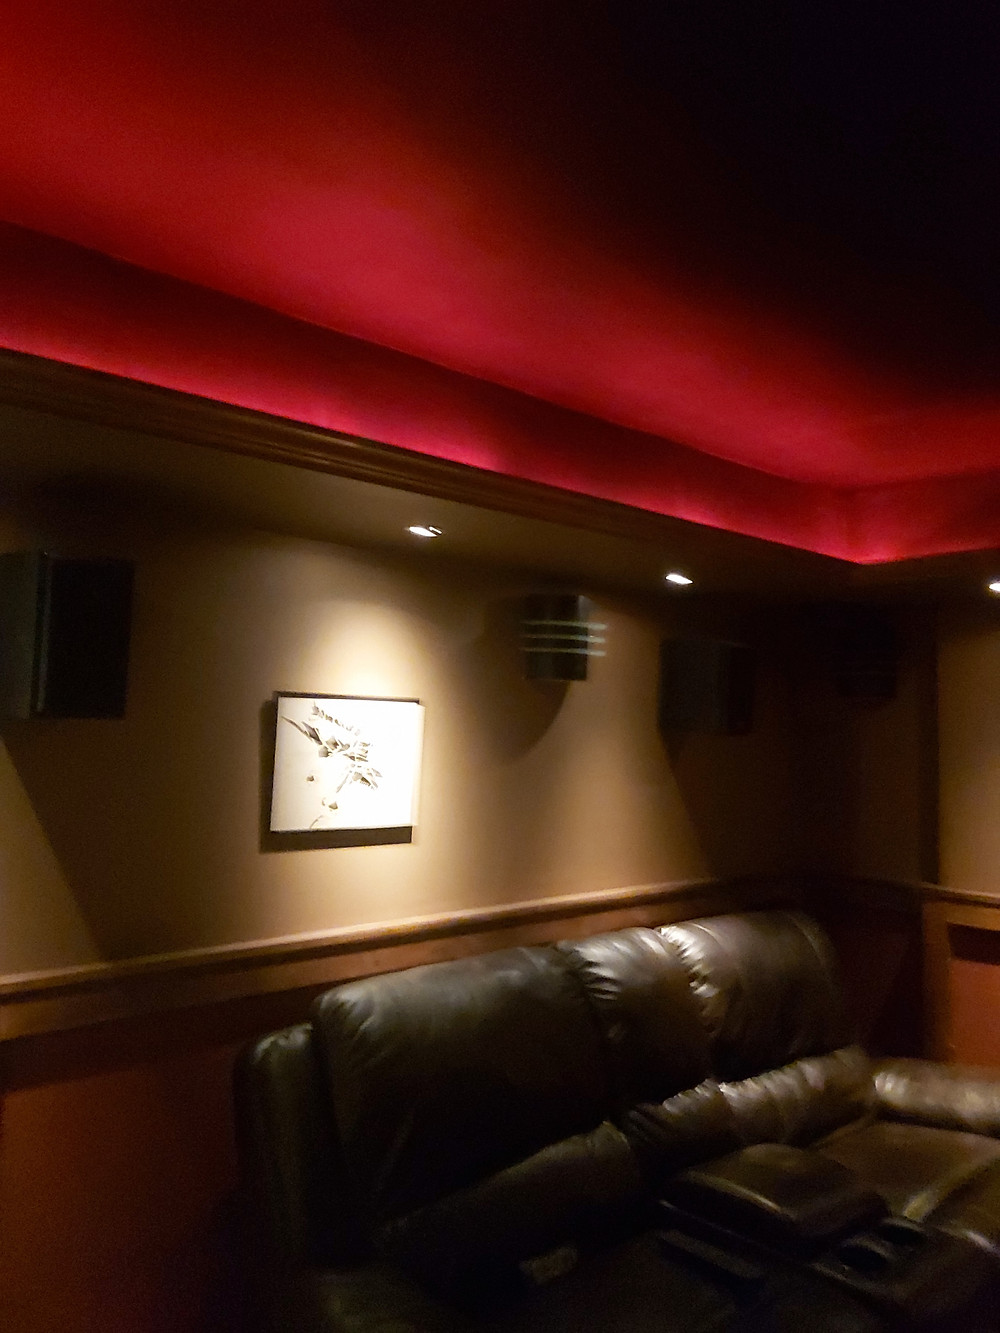 home cinema rope light cove lighting detail and a pot light highlighting a picture on the wall